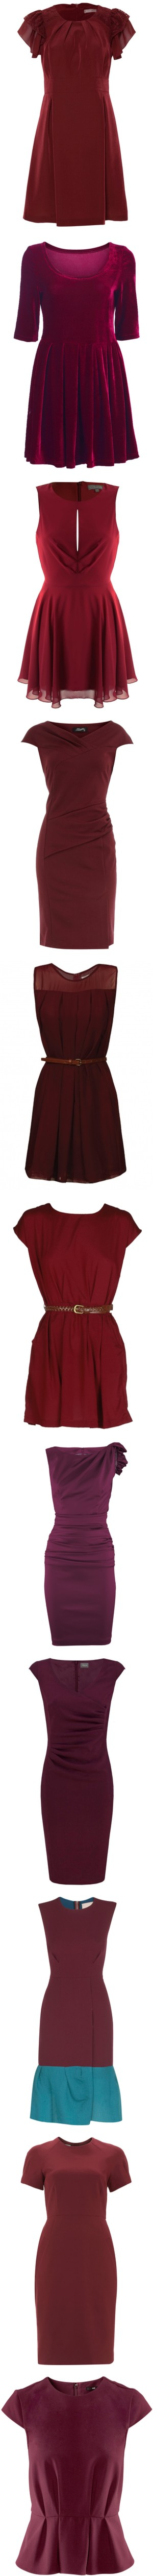 """burgandy oxblood maroon ideas"" by countrycousin ❤ liked on Polyvore"